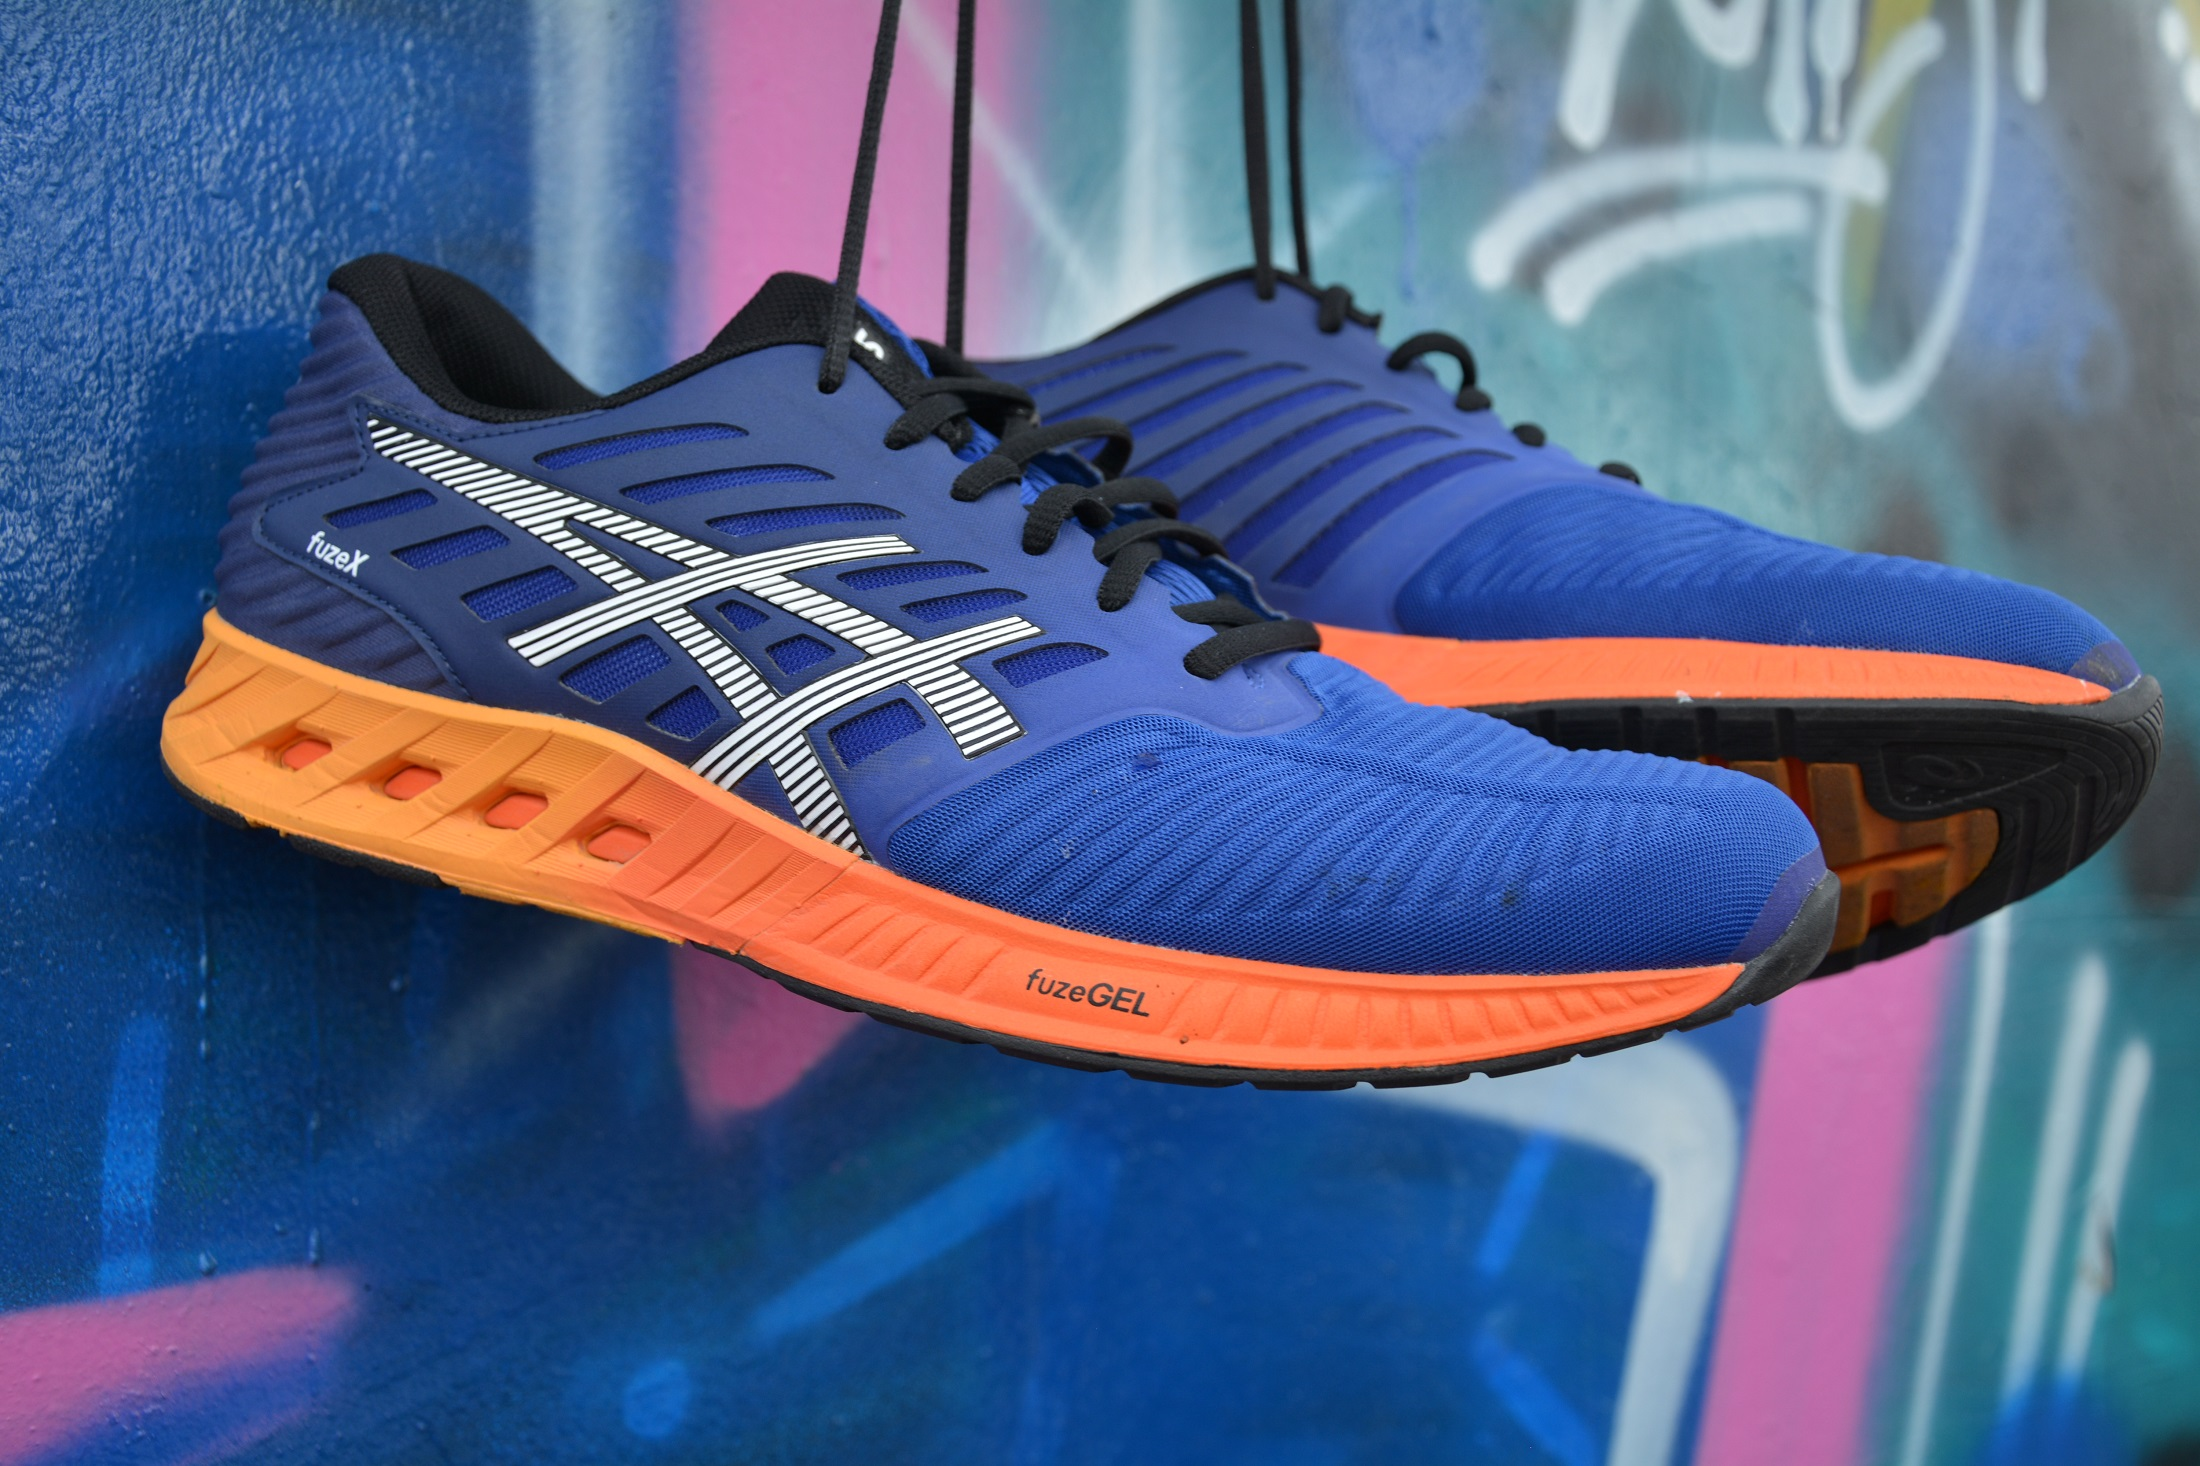 The new Asics FUZE X running shoes are here!